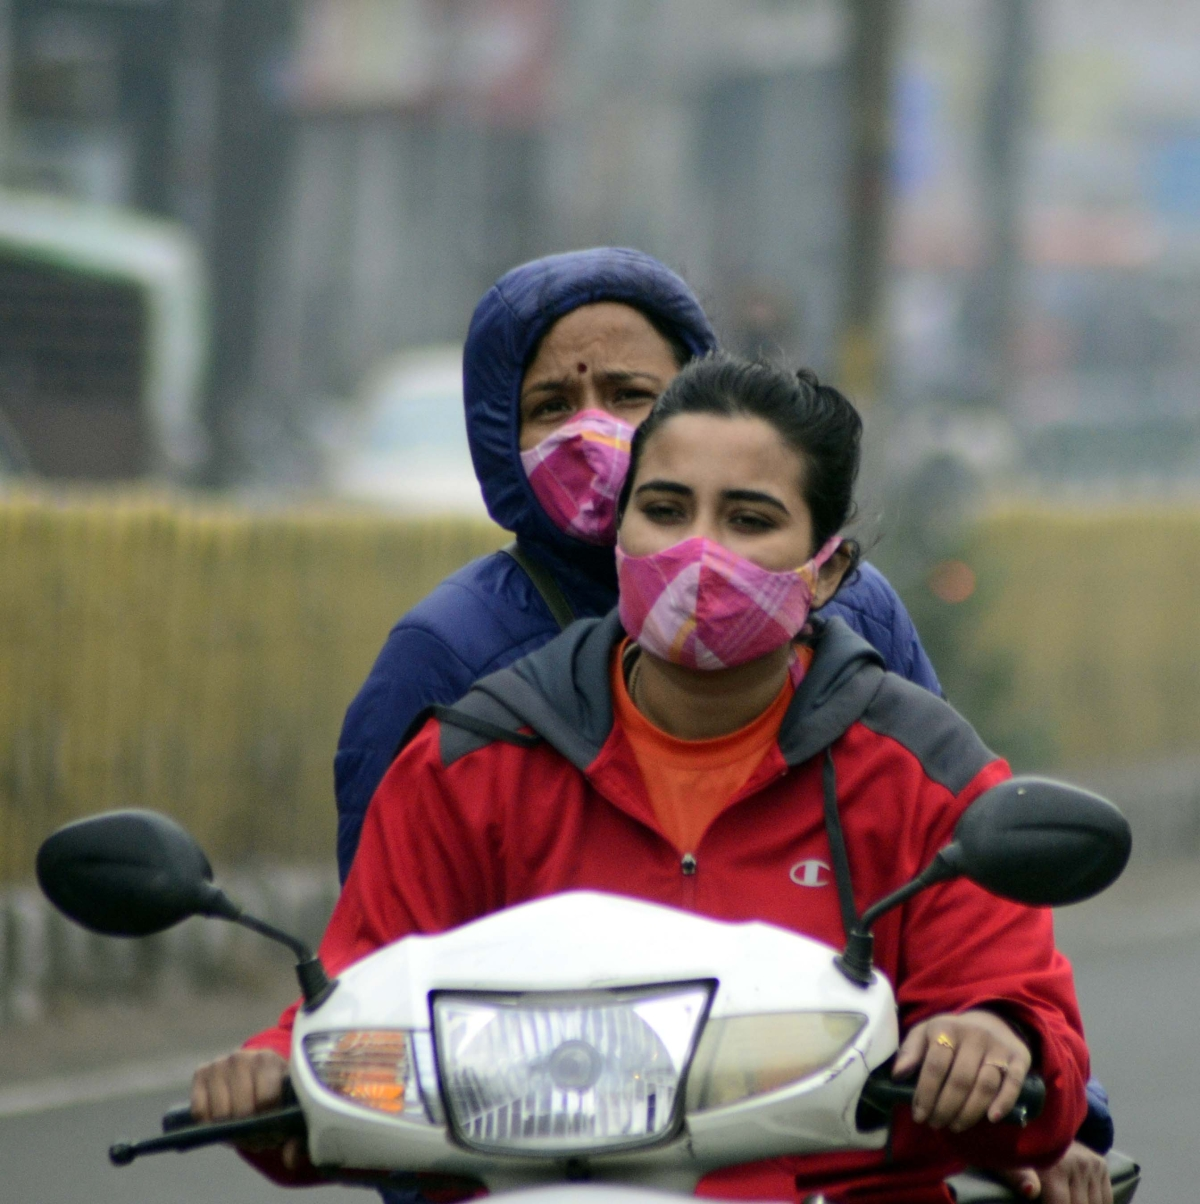 Bhopal recorded a day temperature of 25.3 degrees Celsius, while the night temperature was 16.7 degrees Celsius.